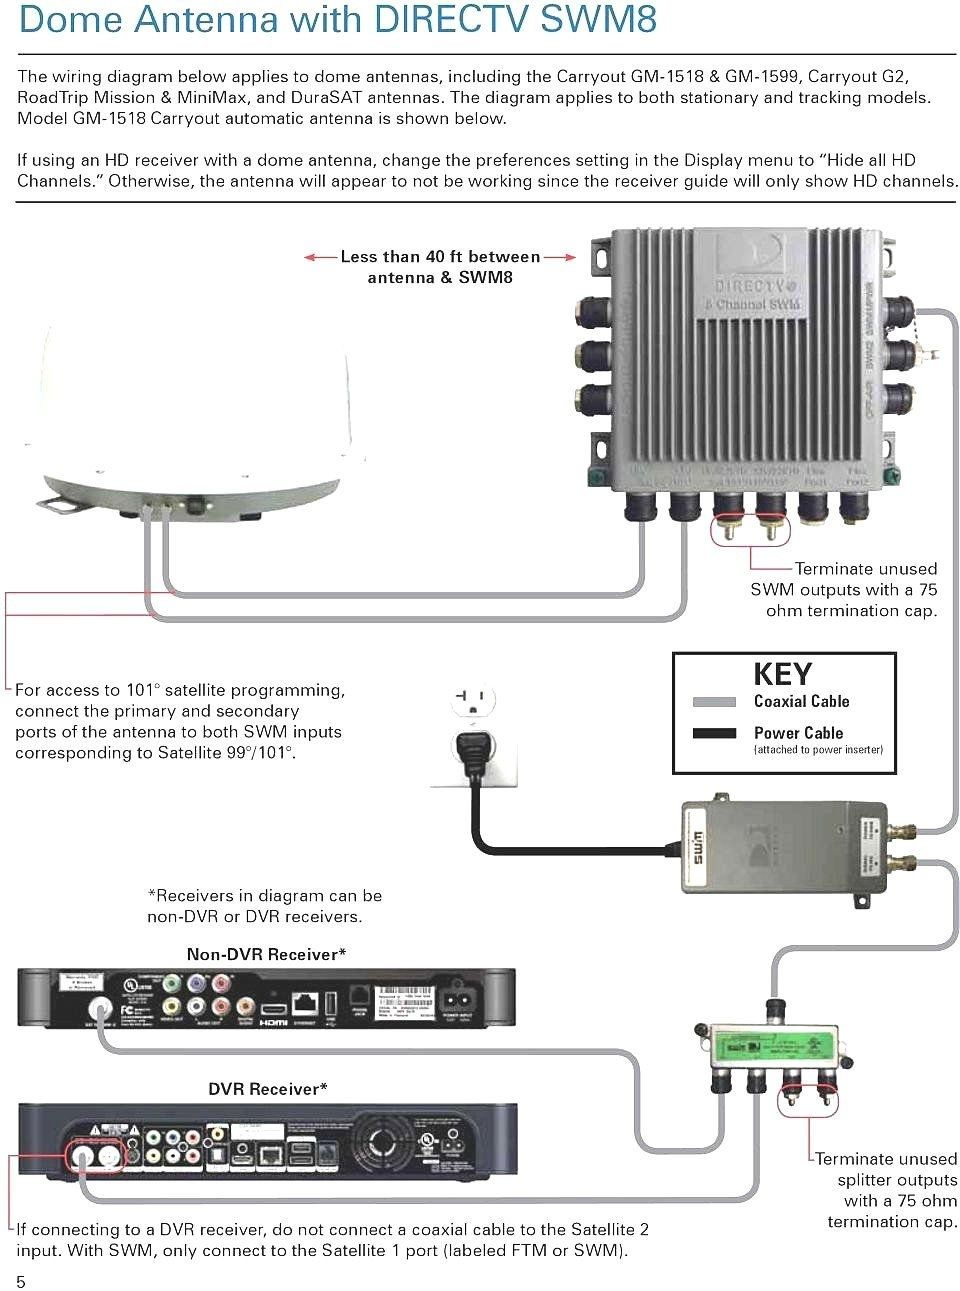 direct tv schematic diagram the best place to get wiring how to hook up directv box to tv directv genie hd dvr to the tv